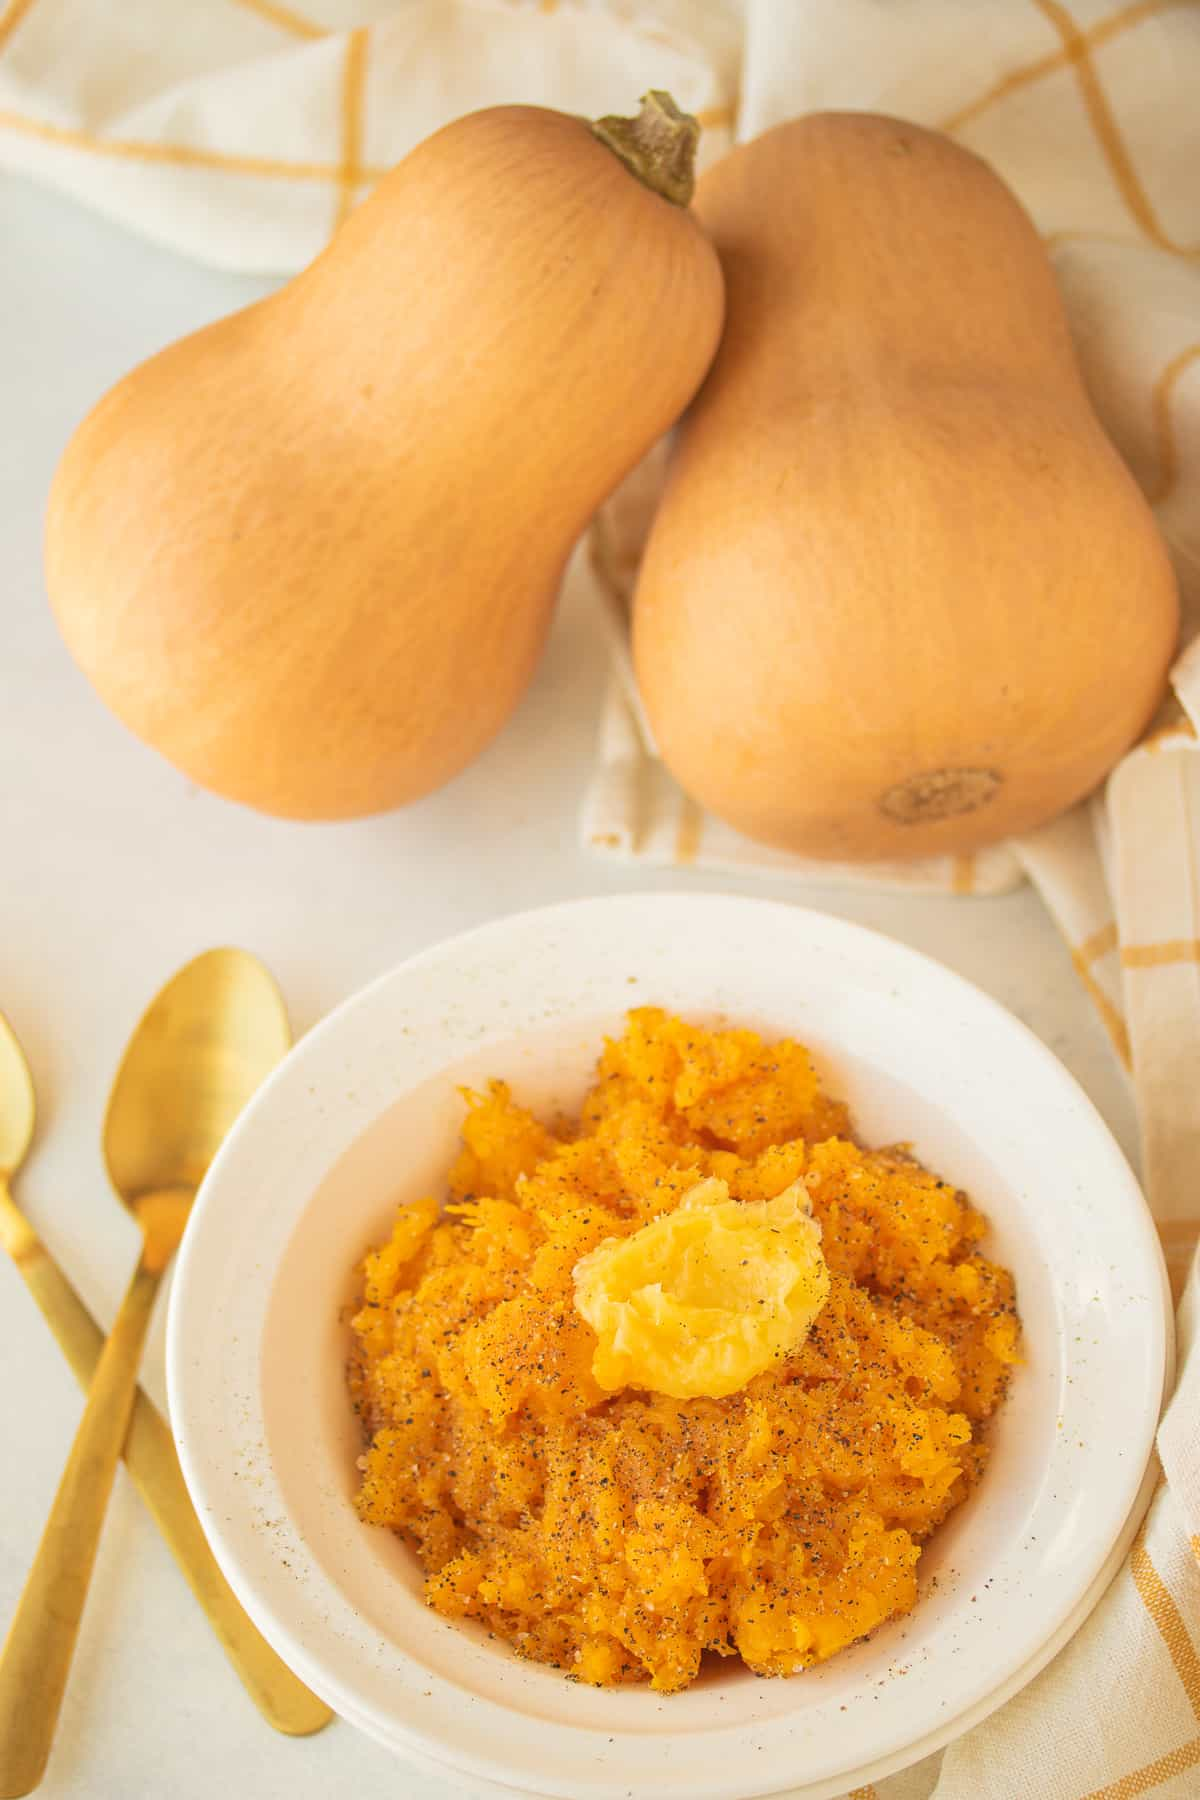 whole butternut squash next to a bowl of squash puree